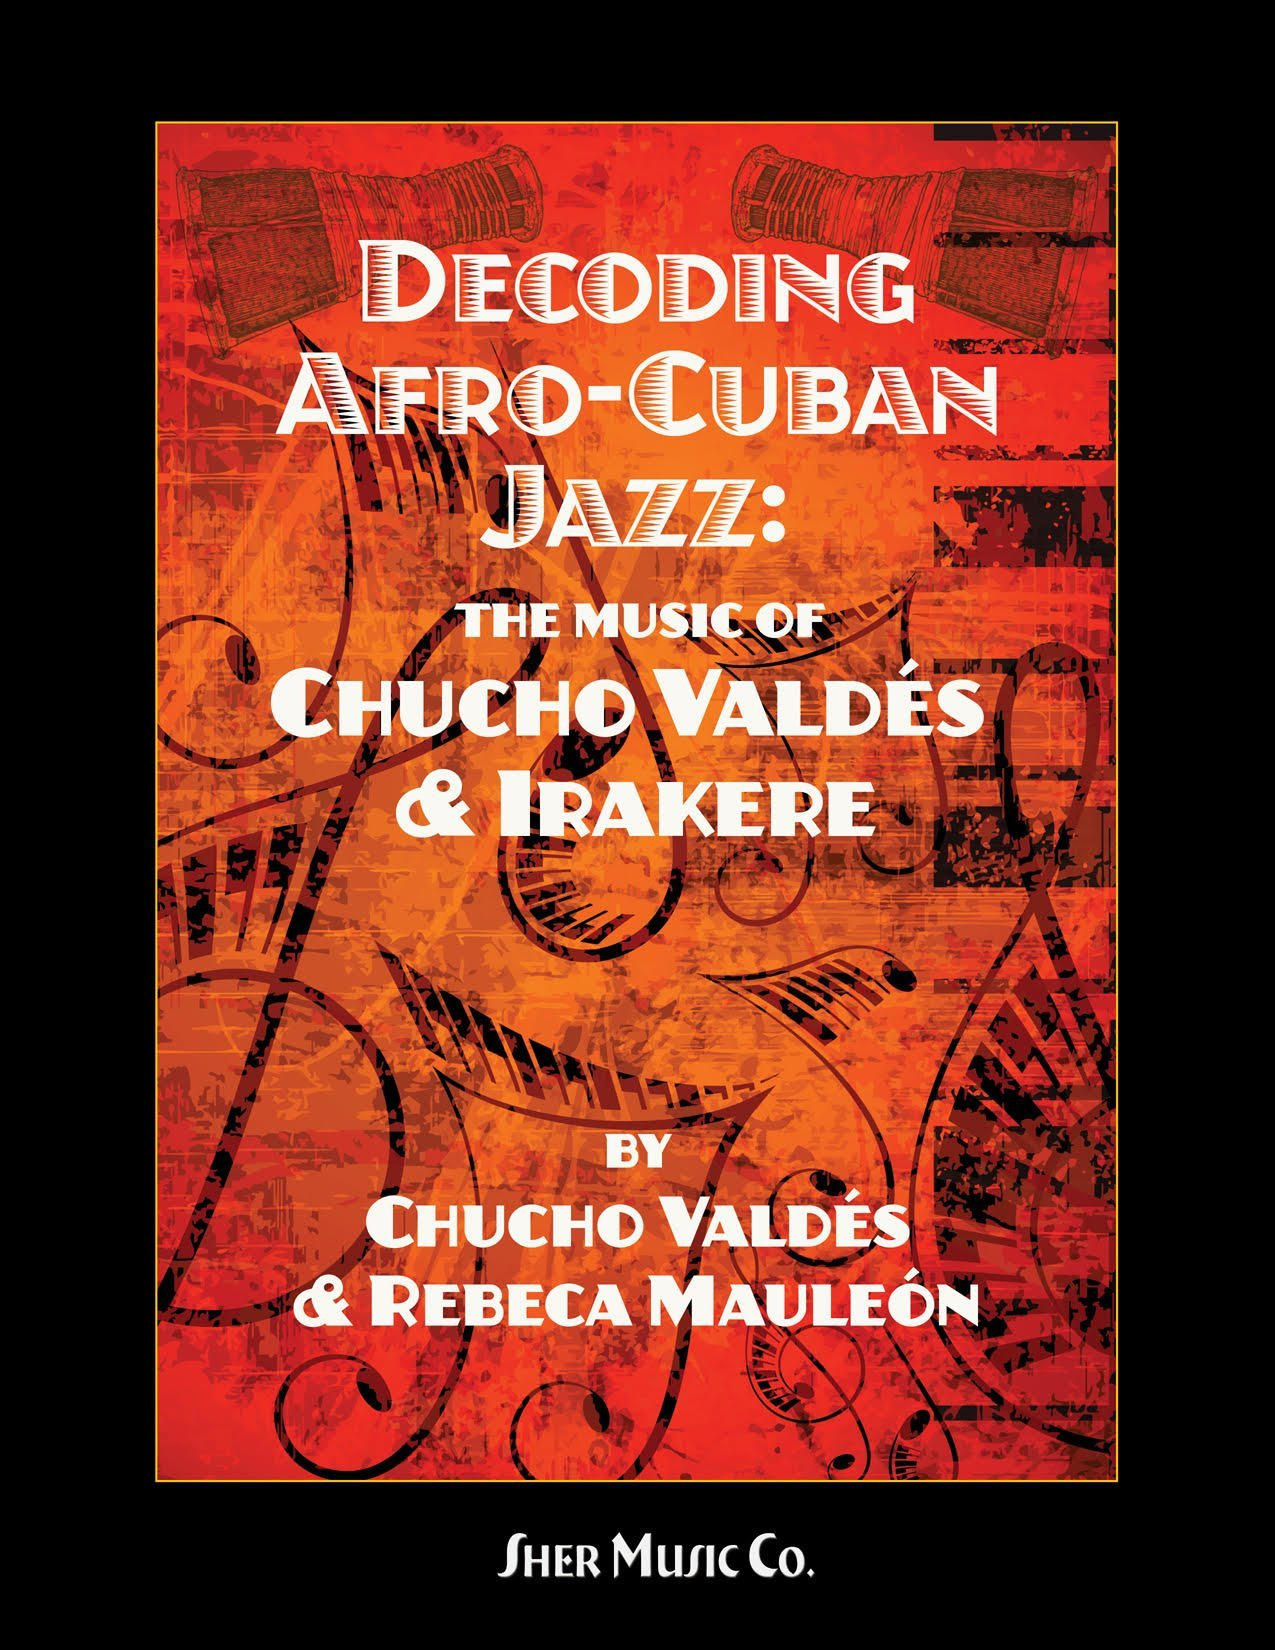 Decoding Afro-Cuban Jazz: The Music of Chucho Valdes: Chucho Valdes and  Rebeca Mauleon: 9780997661729: Amazon.com: Books